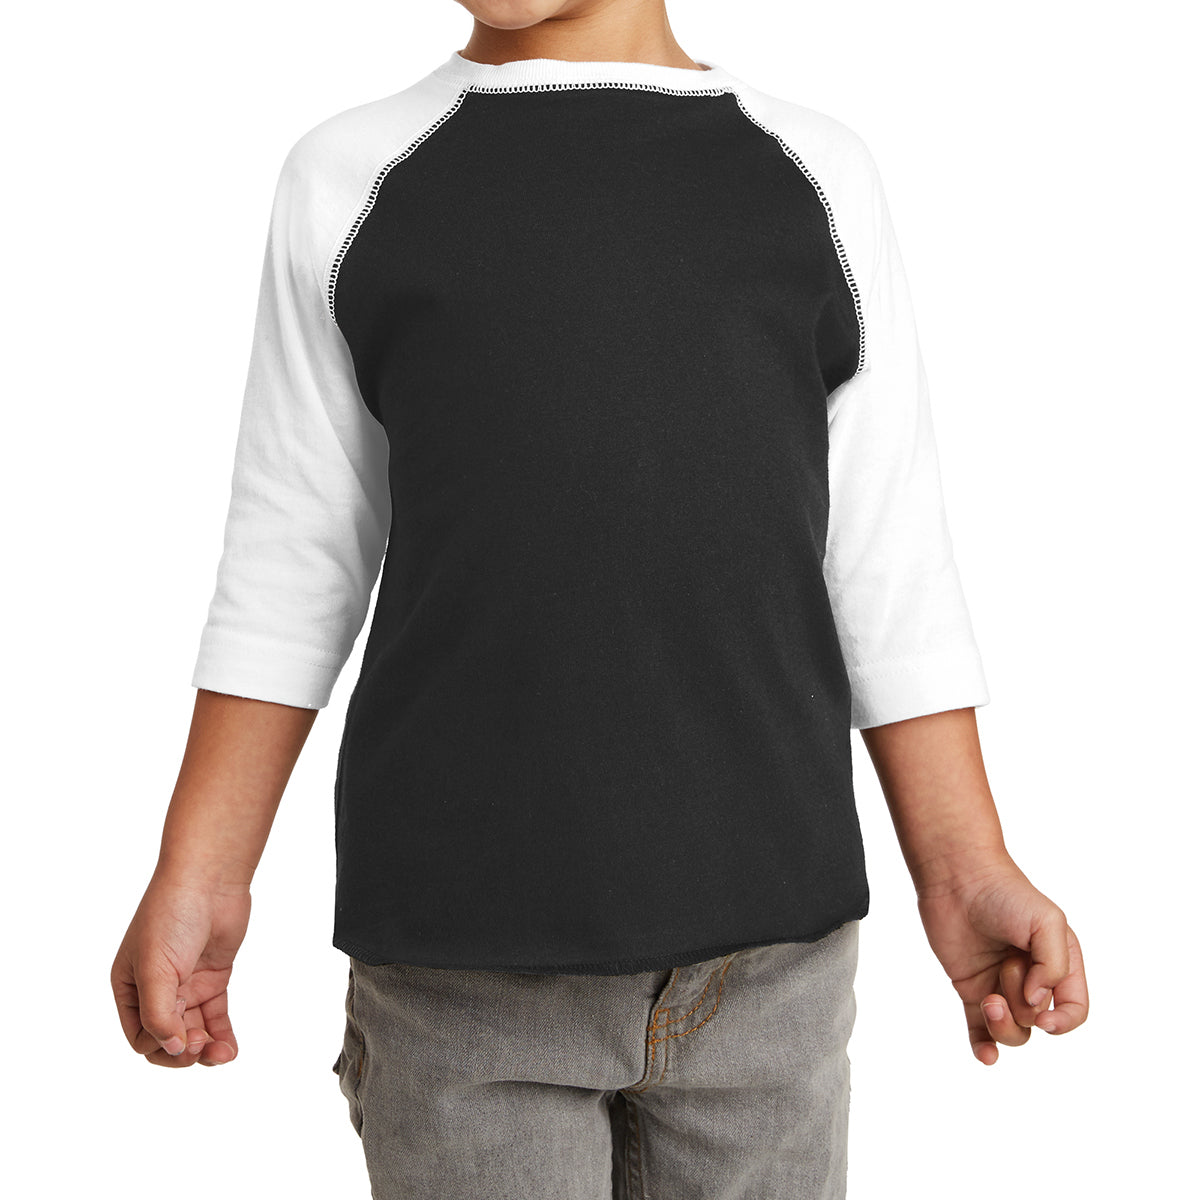 Toddler Baseball Fine Jersey Tee - Black/ White